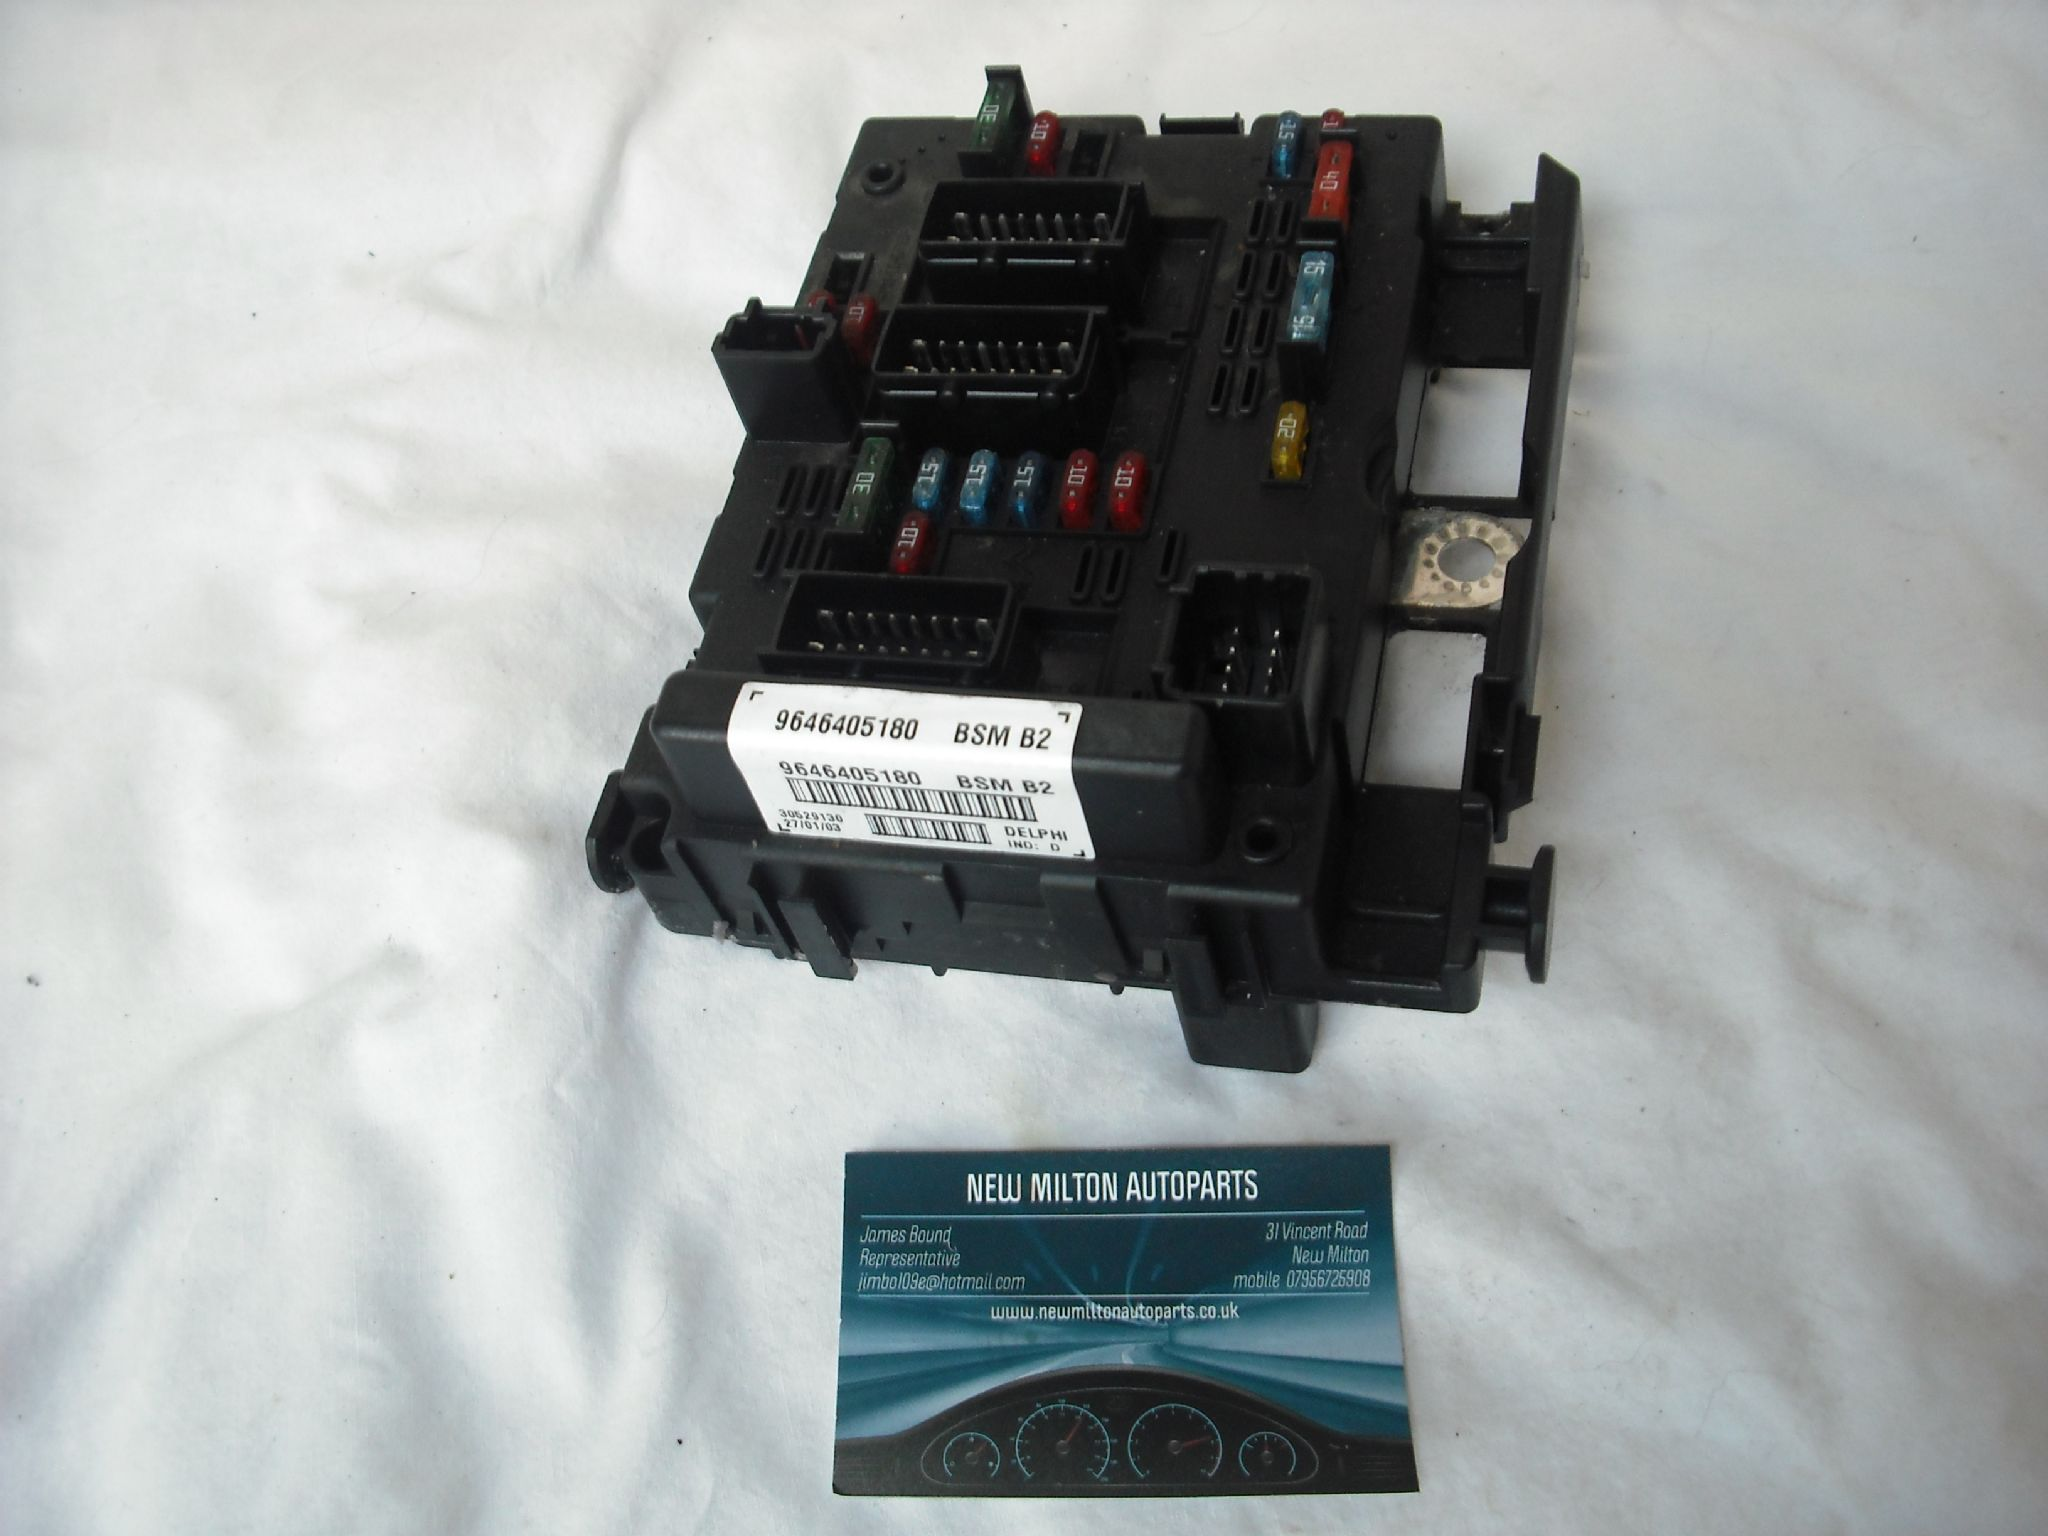 Delphi Fuse Box 15 Wiring Diagram Images Diagrams Peugeot 307 Where Is A Genuine 14 16 20 Engine Bay Control Module 9646405180 Bsm B2